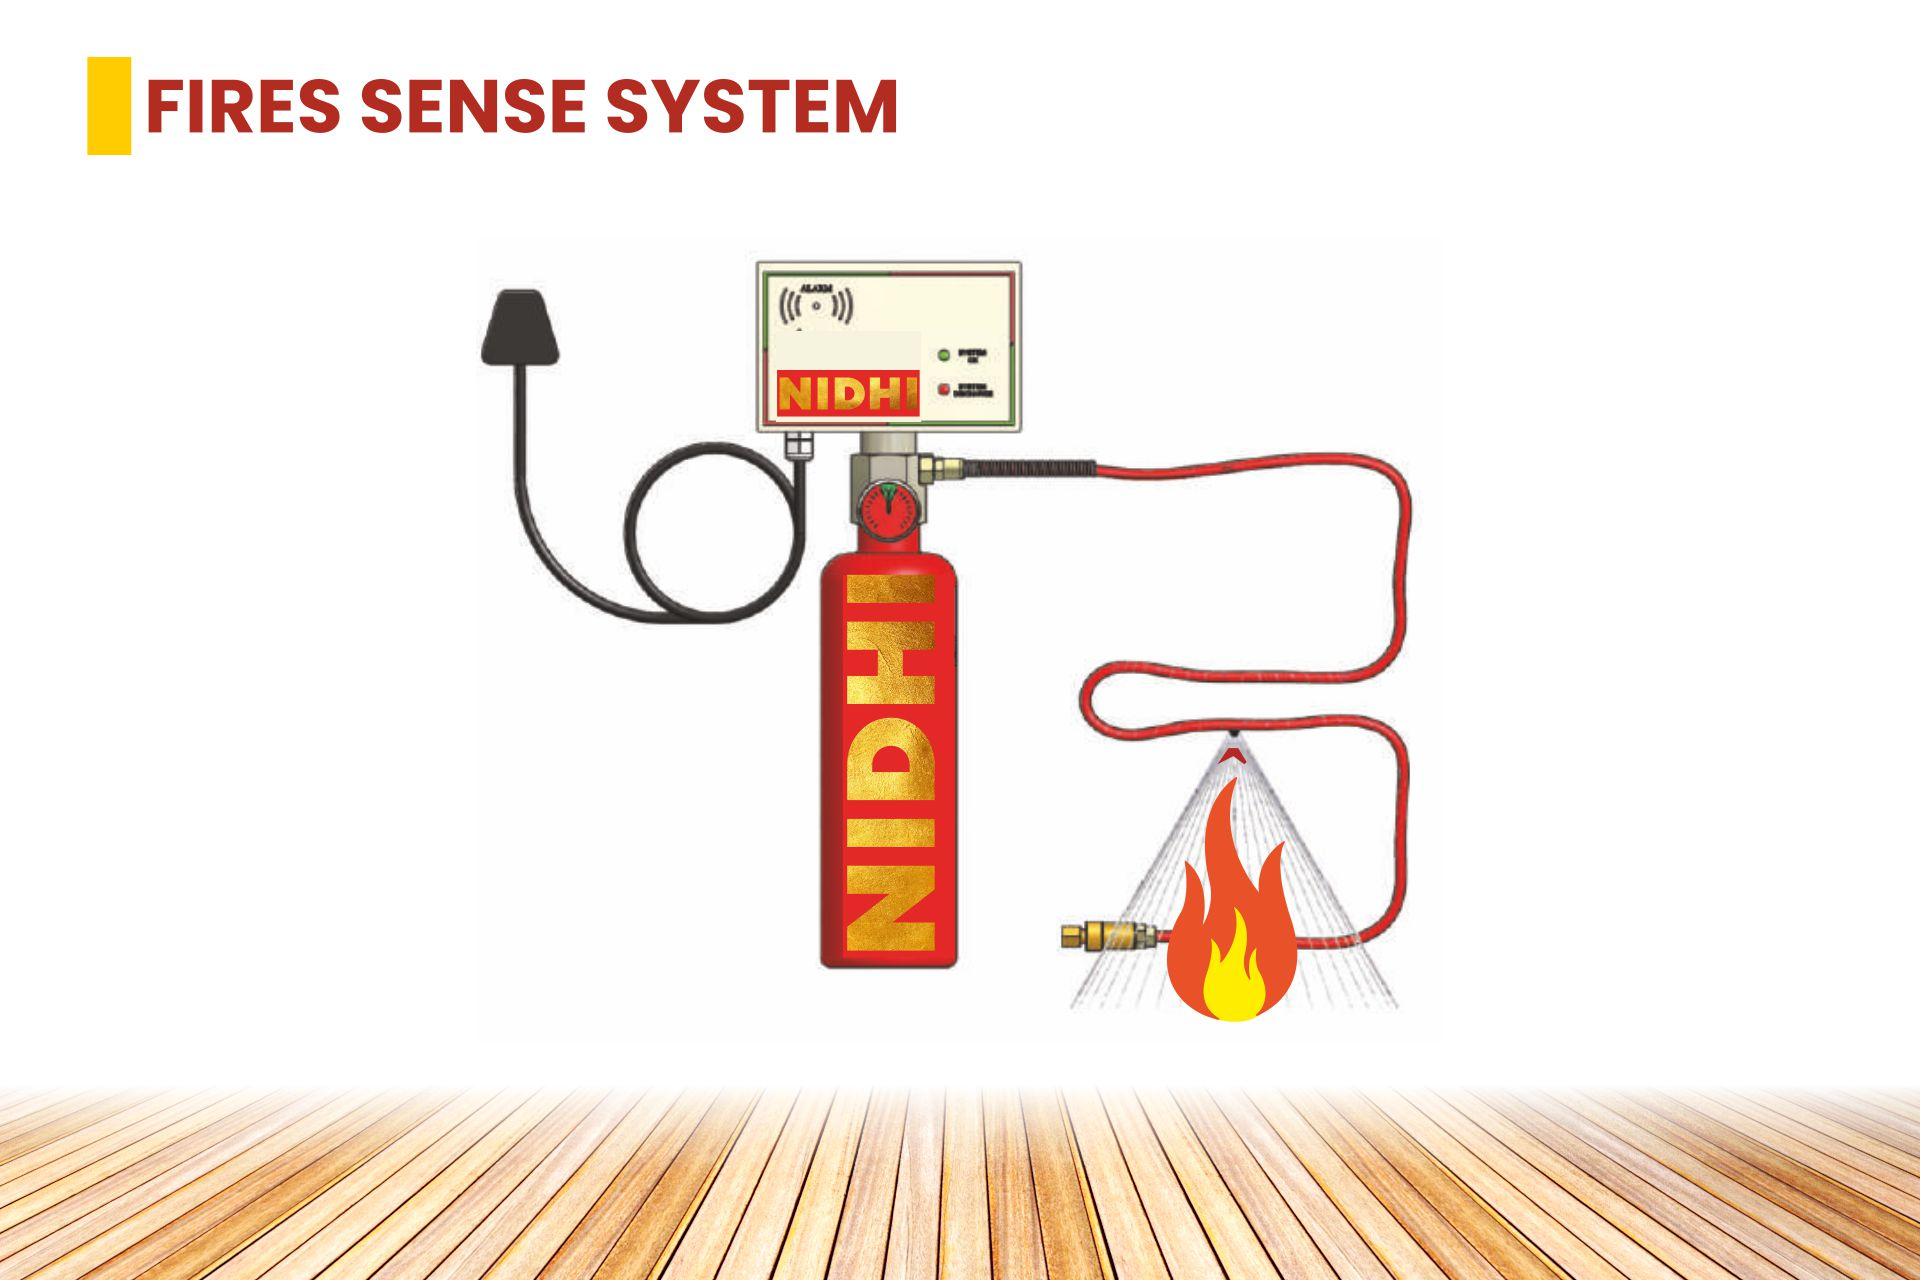 FIRE SENSE SYSTEM Product 3